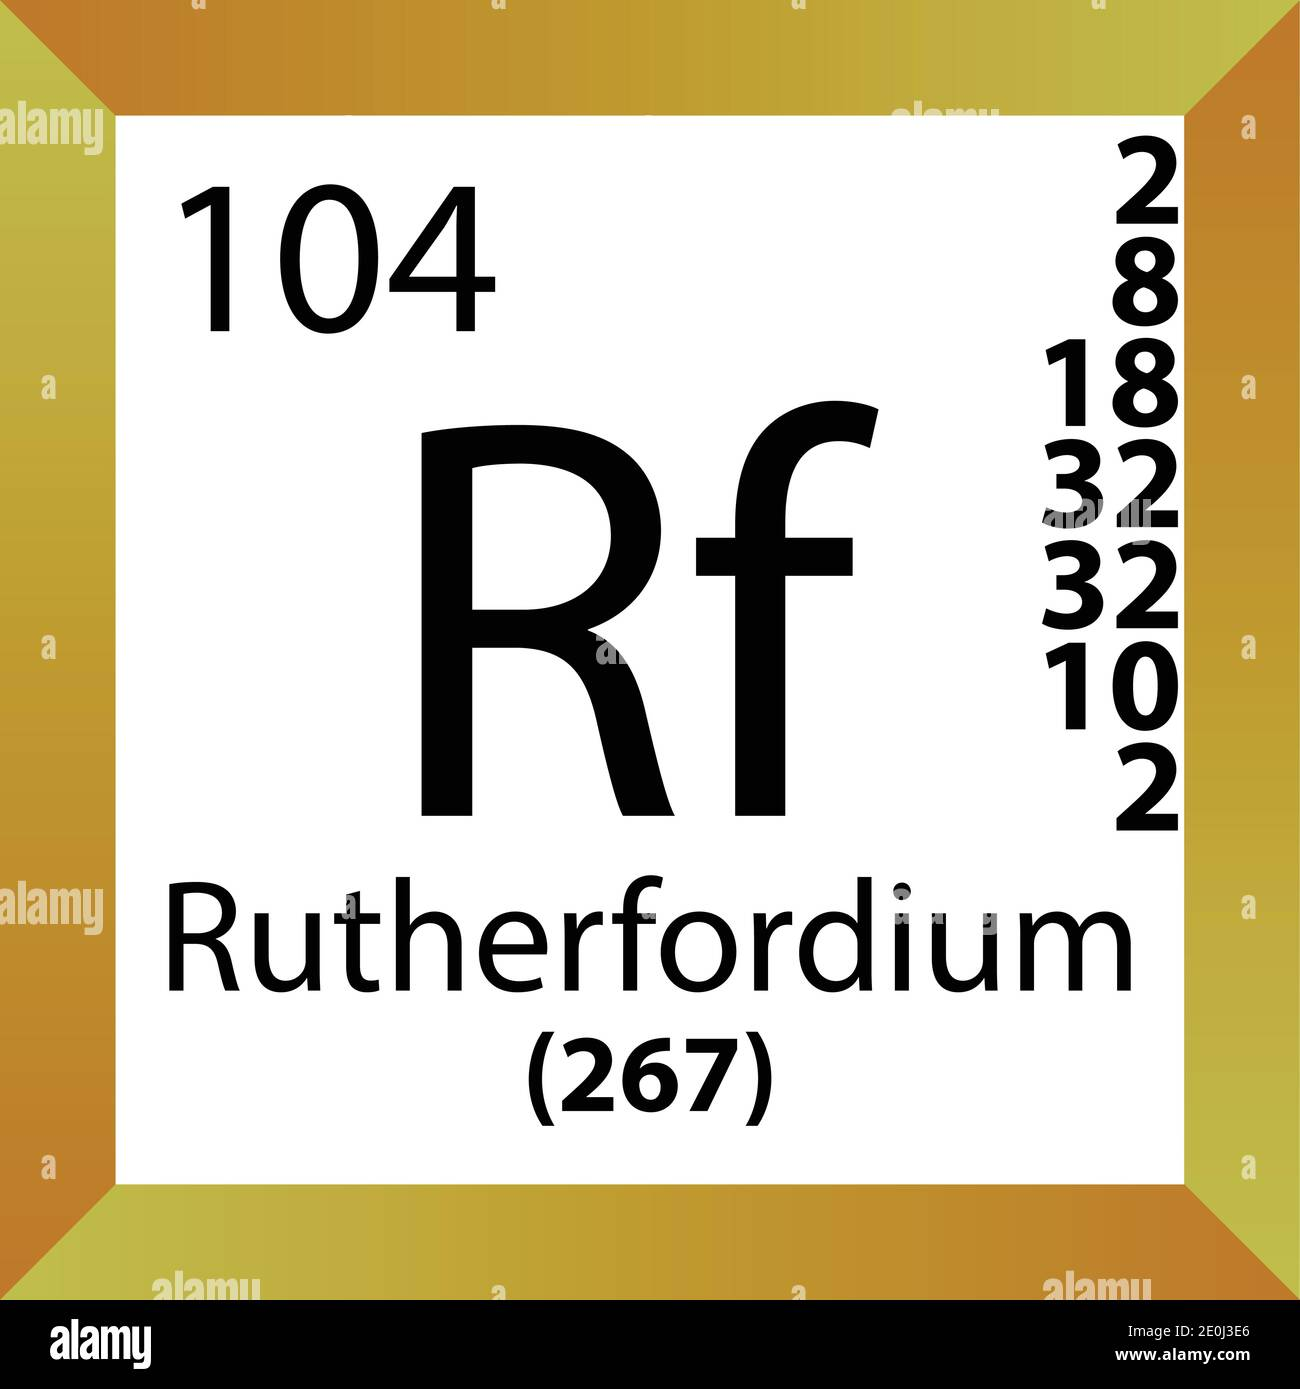 Rf Rutherfordium Chemical Element Periodic Table. Single vector illustration, colorful Icon with molar mass, electron conf. and atomic number. Stock Vector